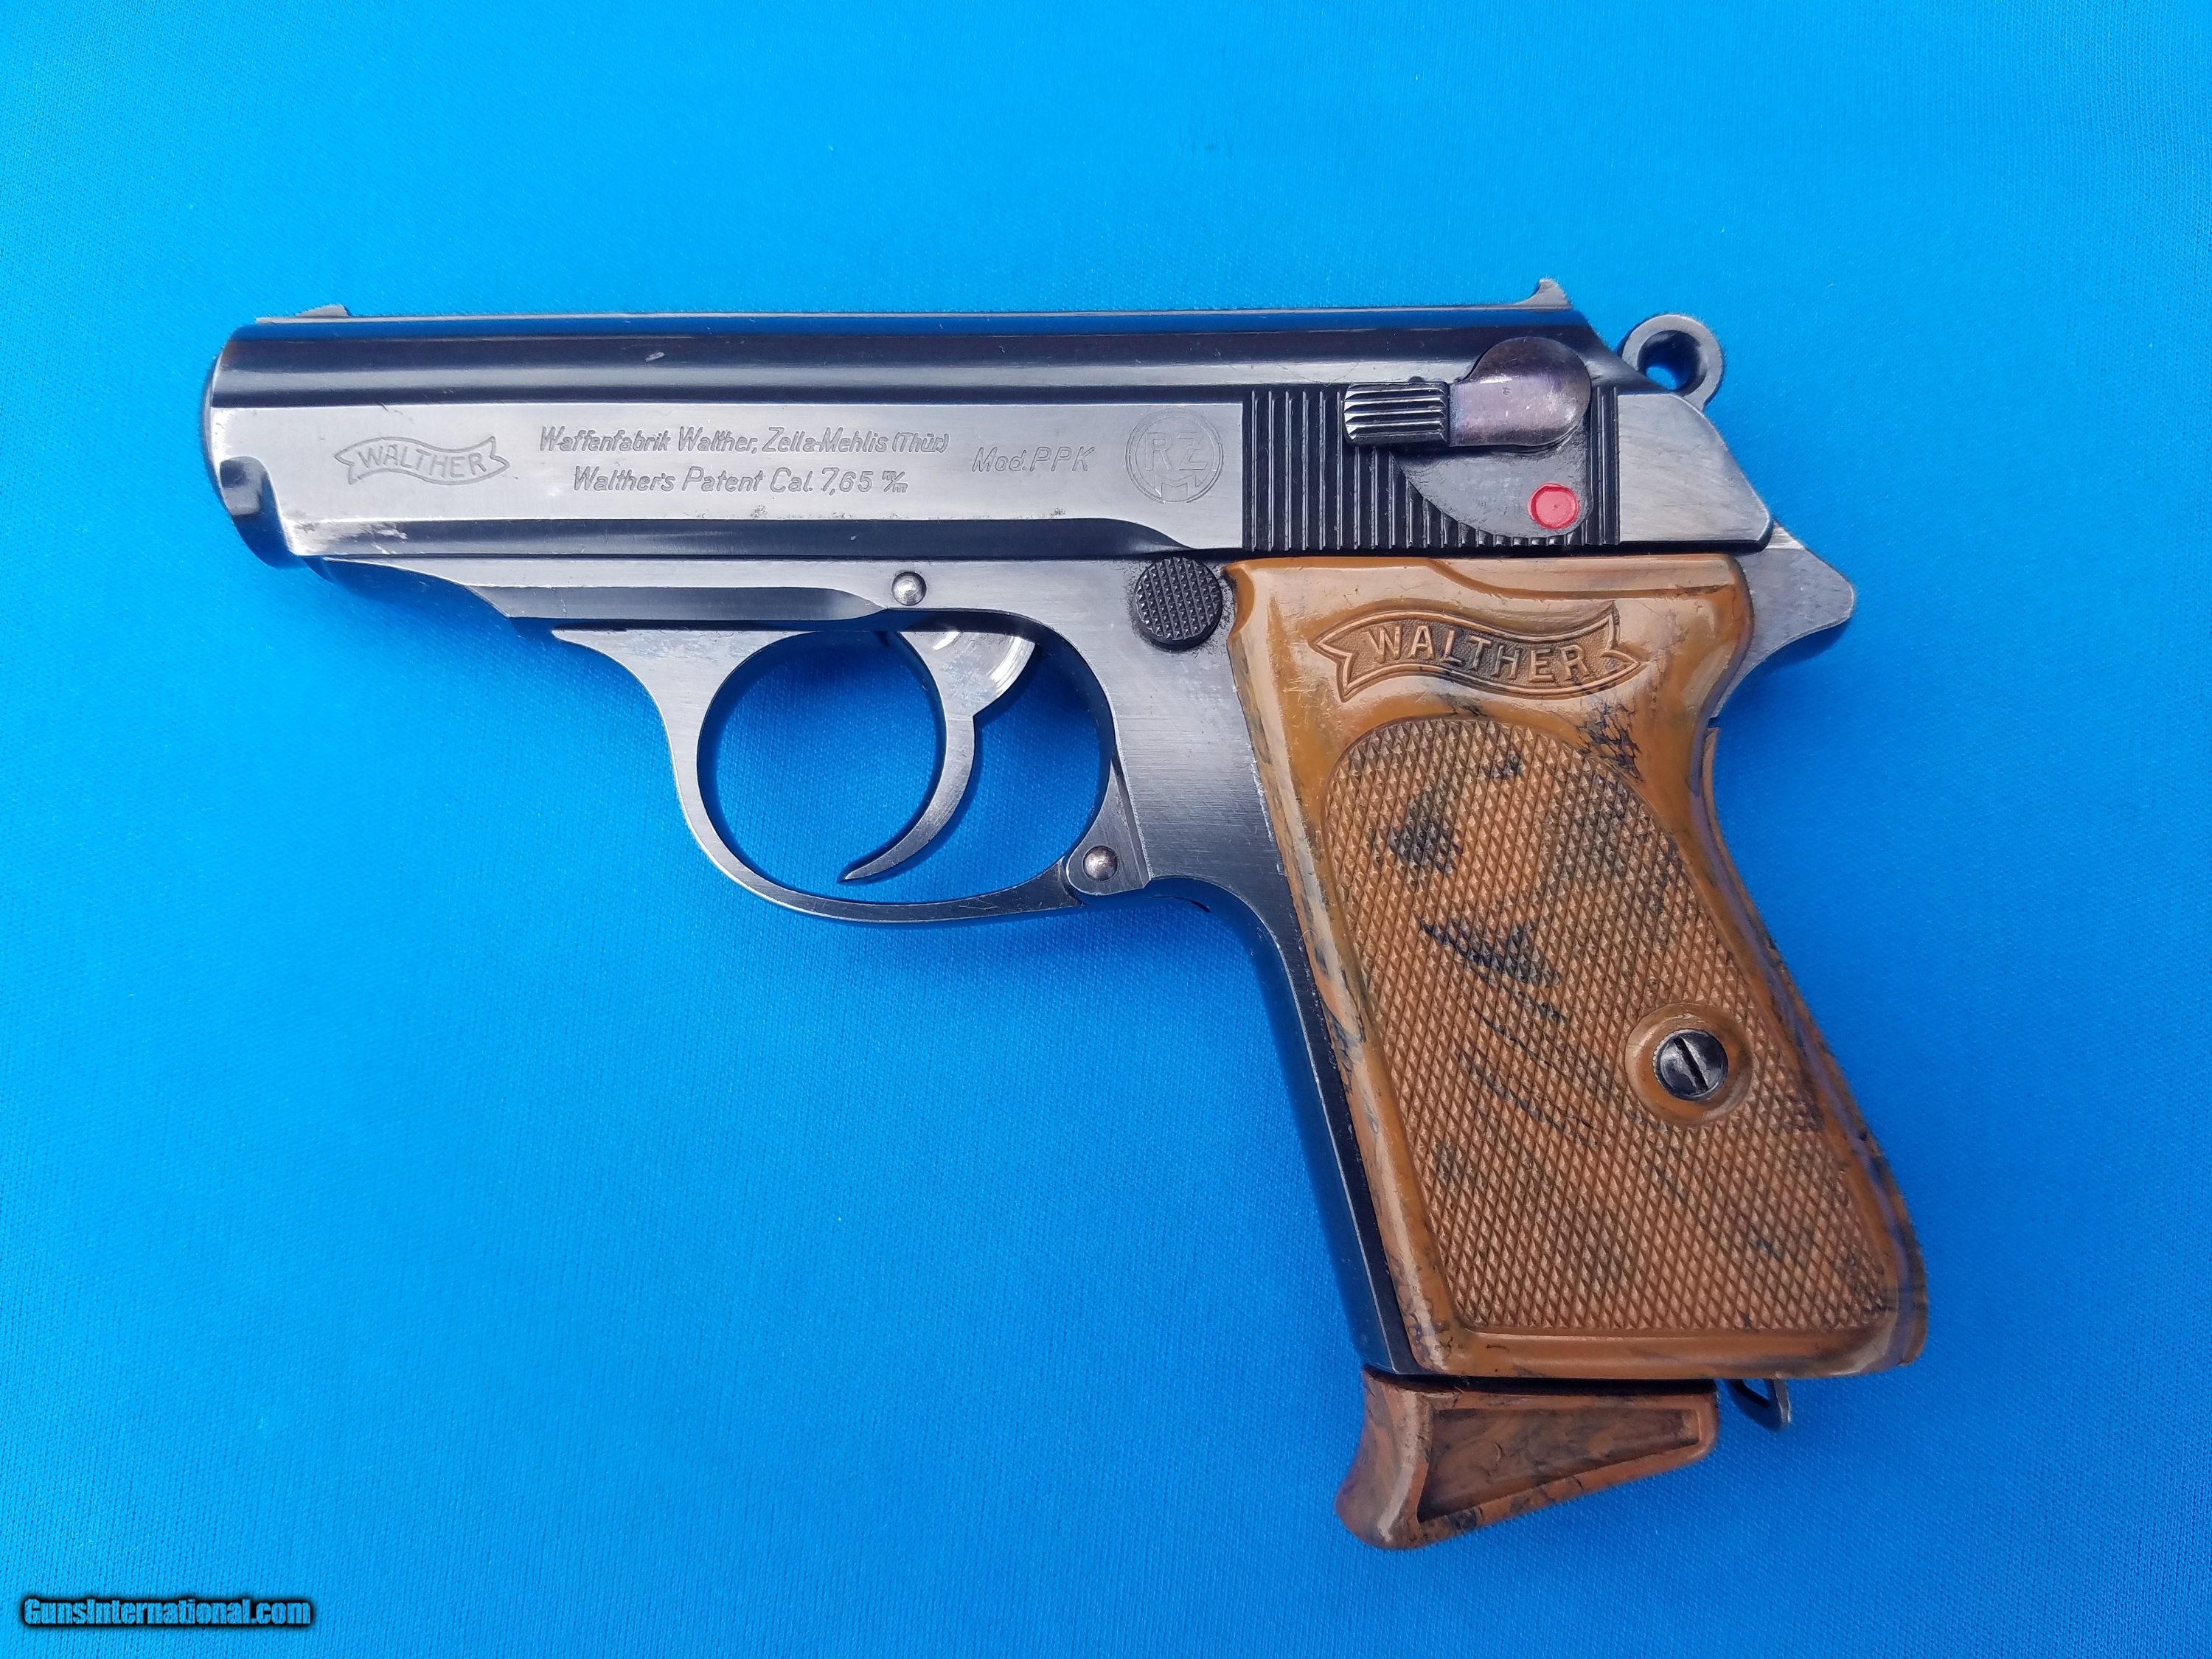 Walther PPK 1st Contract RZM circa 1935 7 65mm